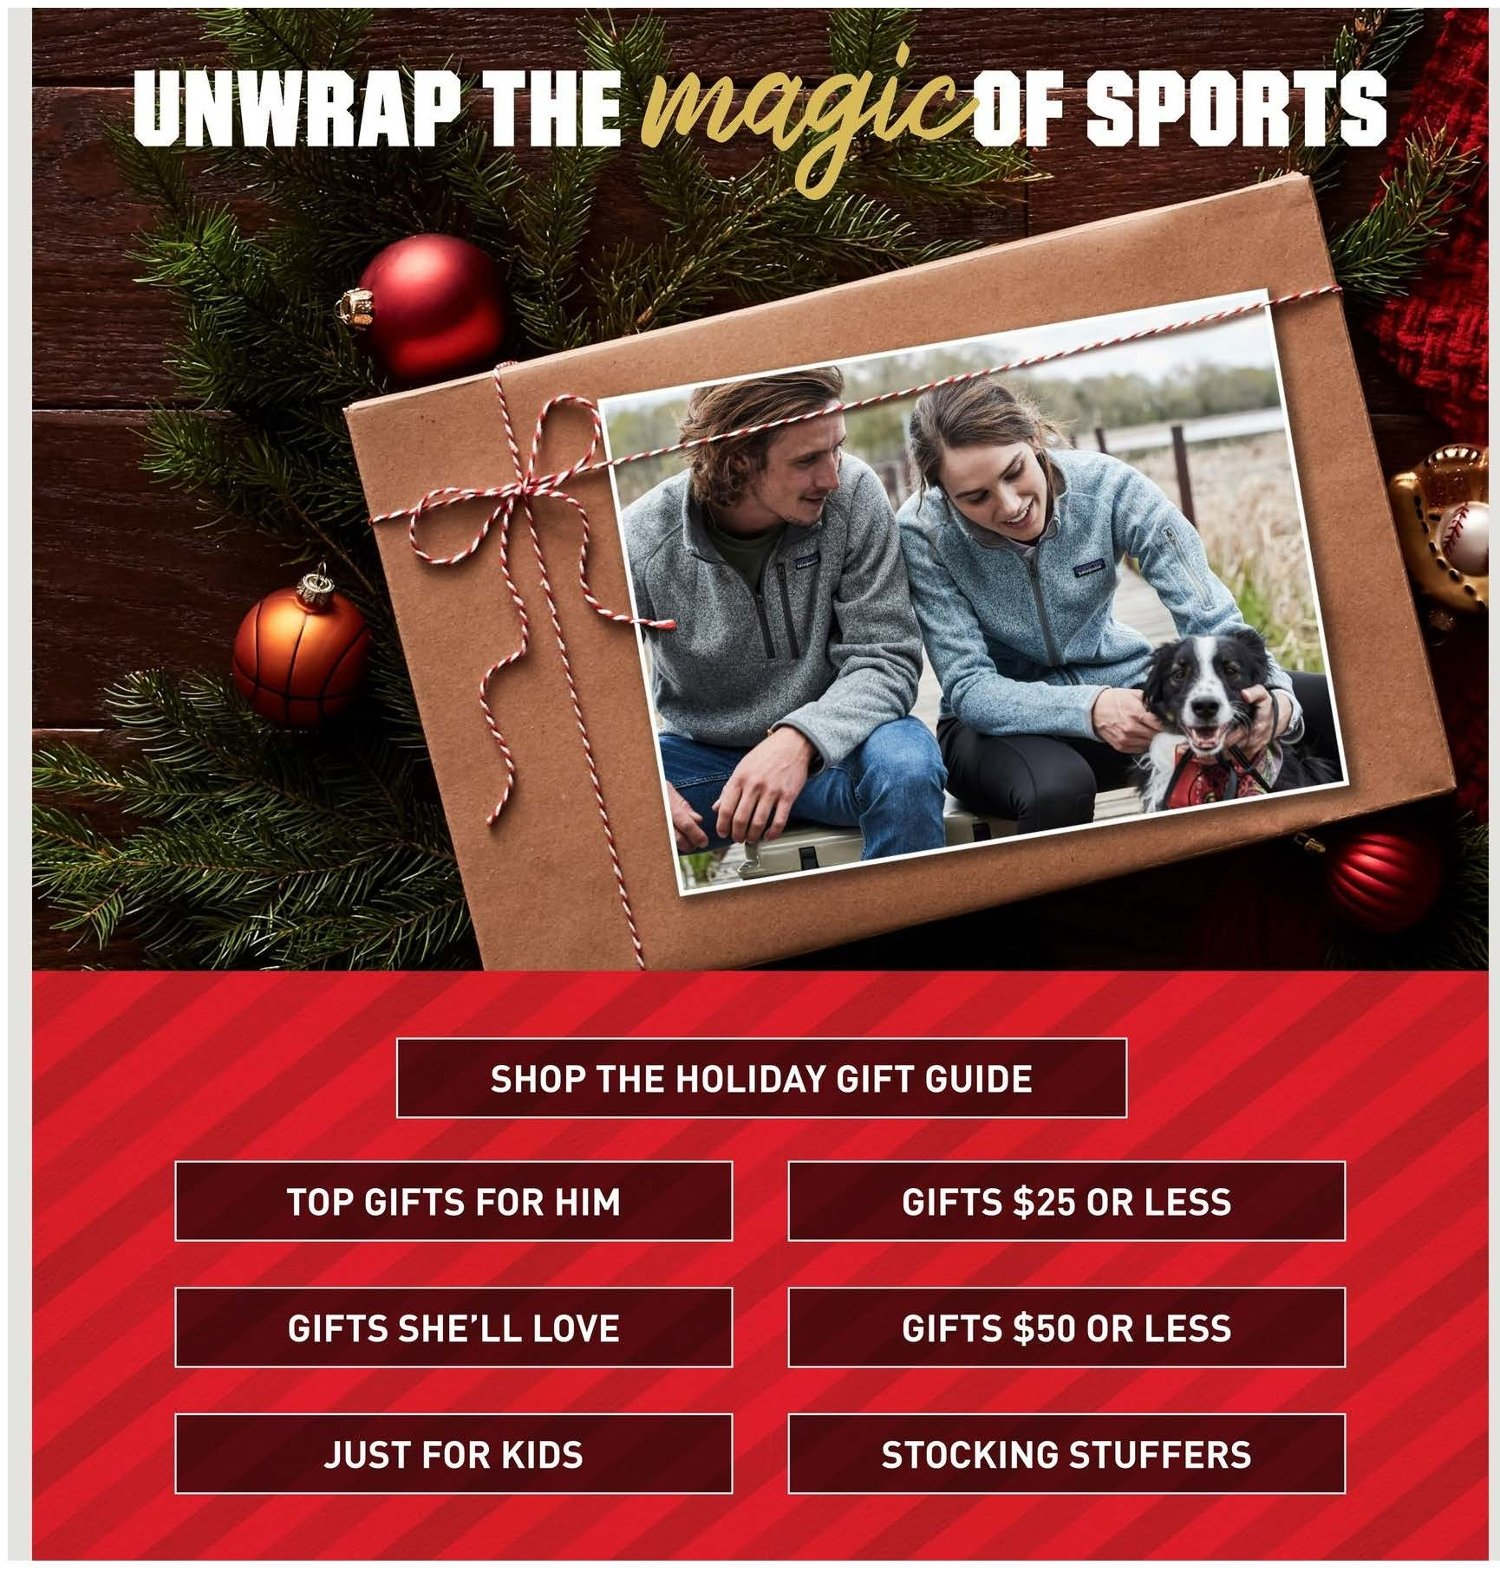 Dick's Sporting Goods Cyber Monday 2019 Page 15